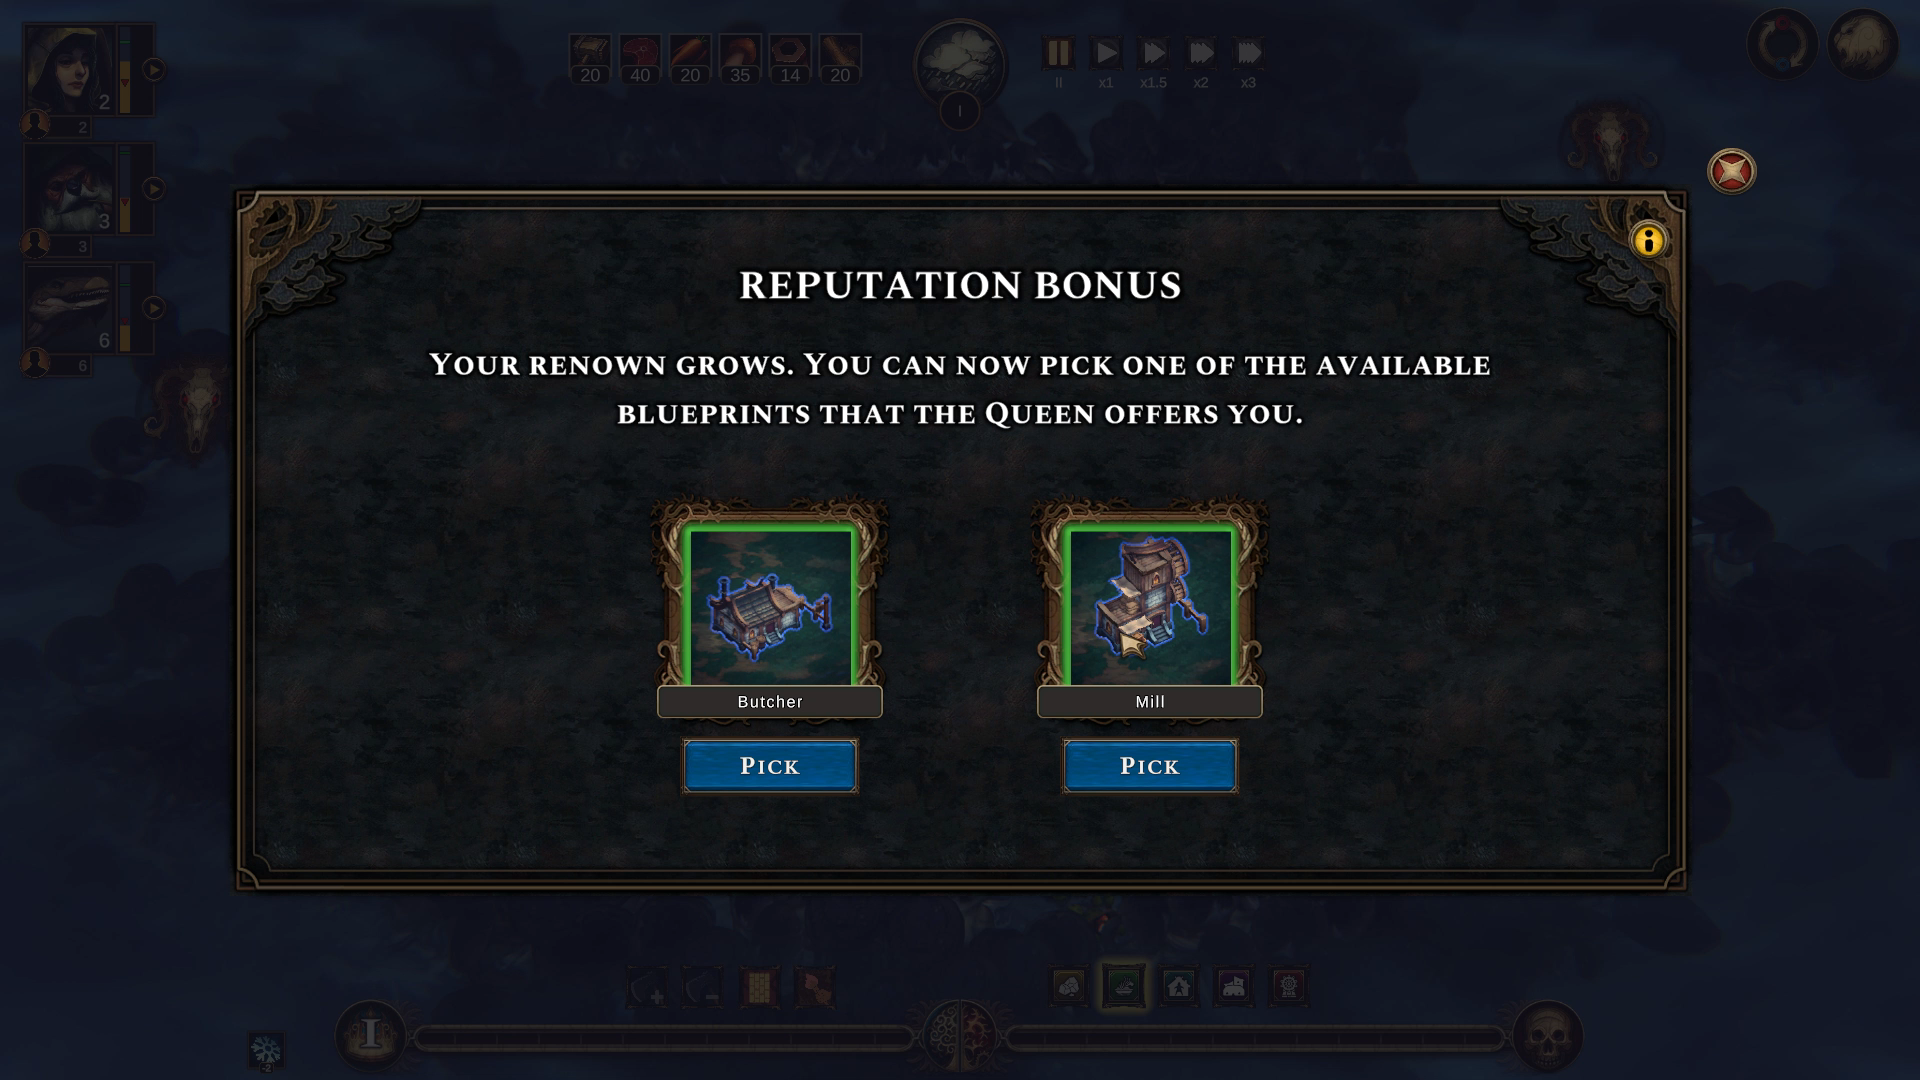 Reputation Bonus